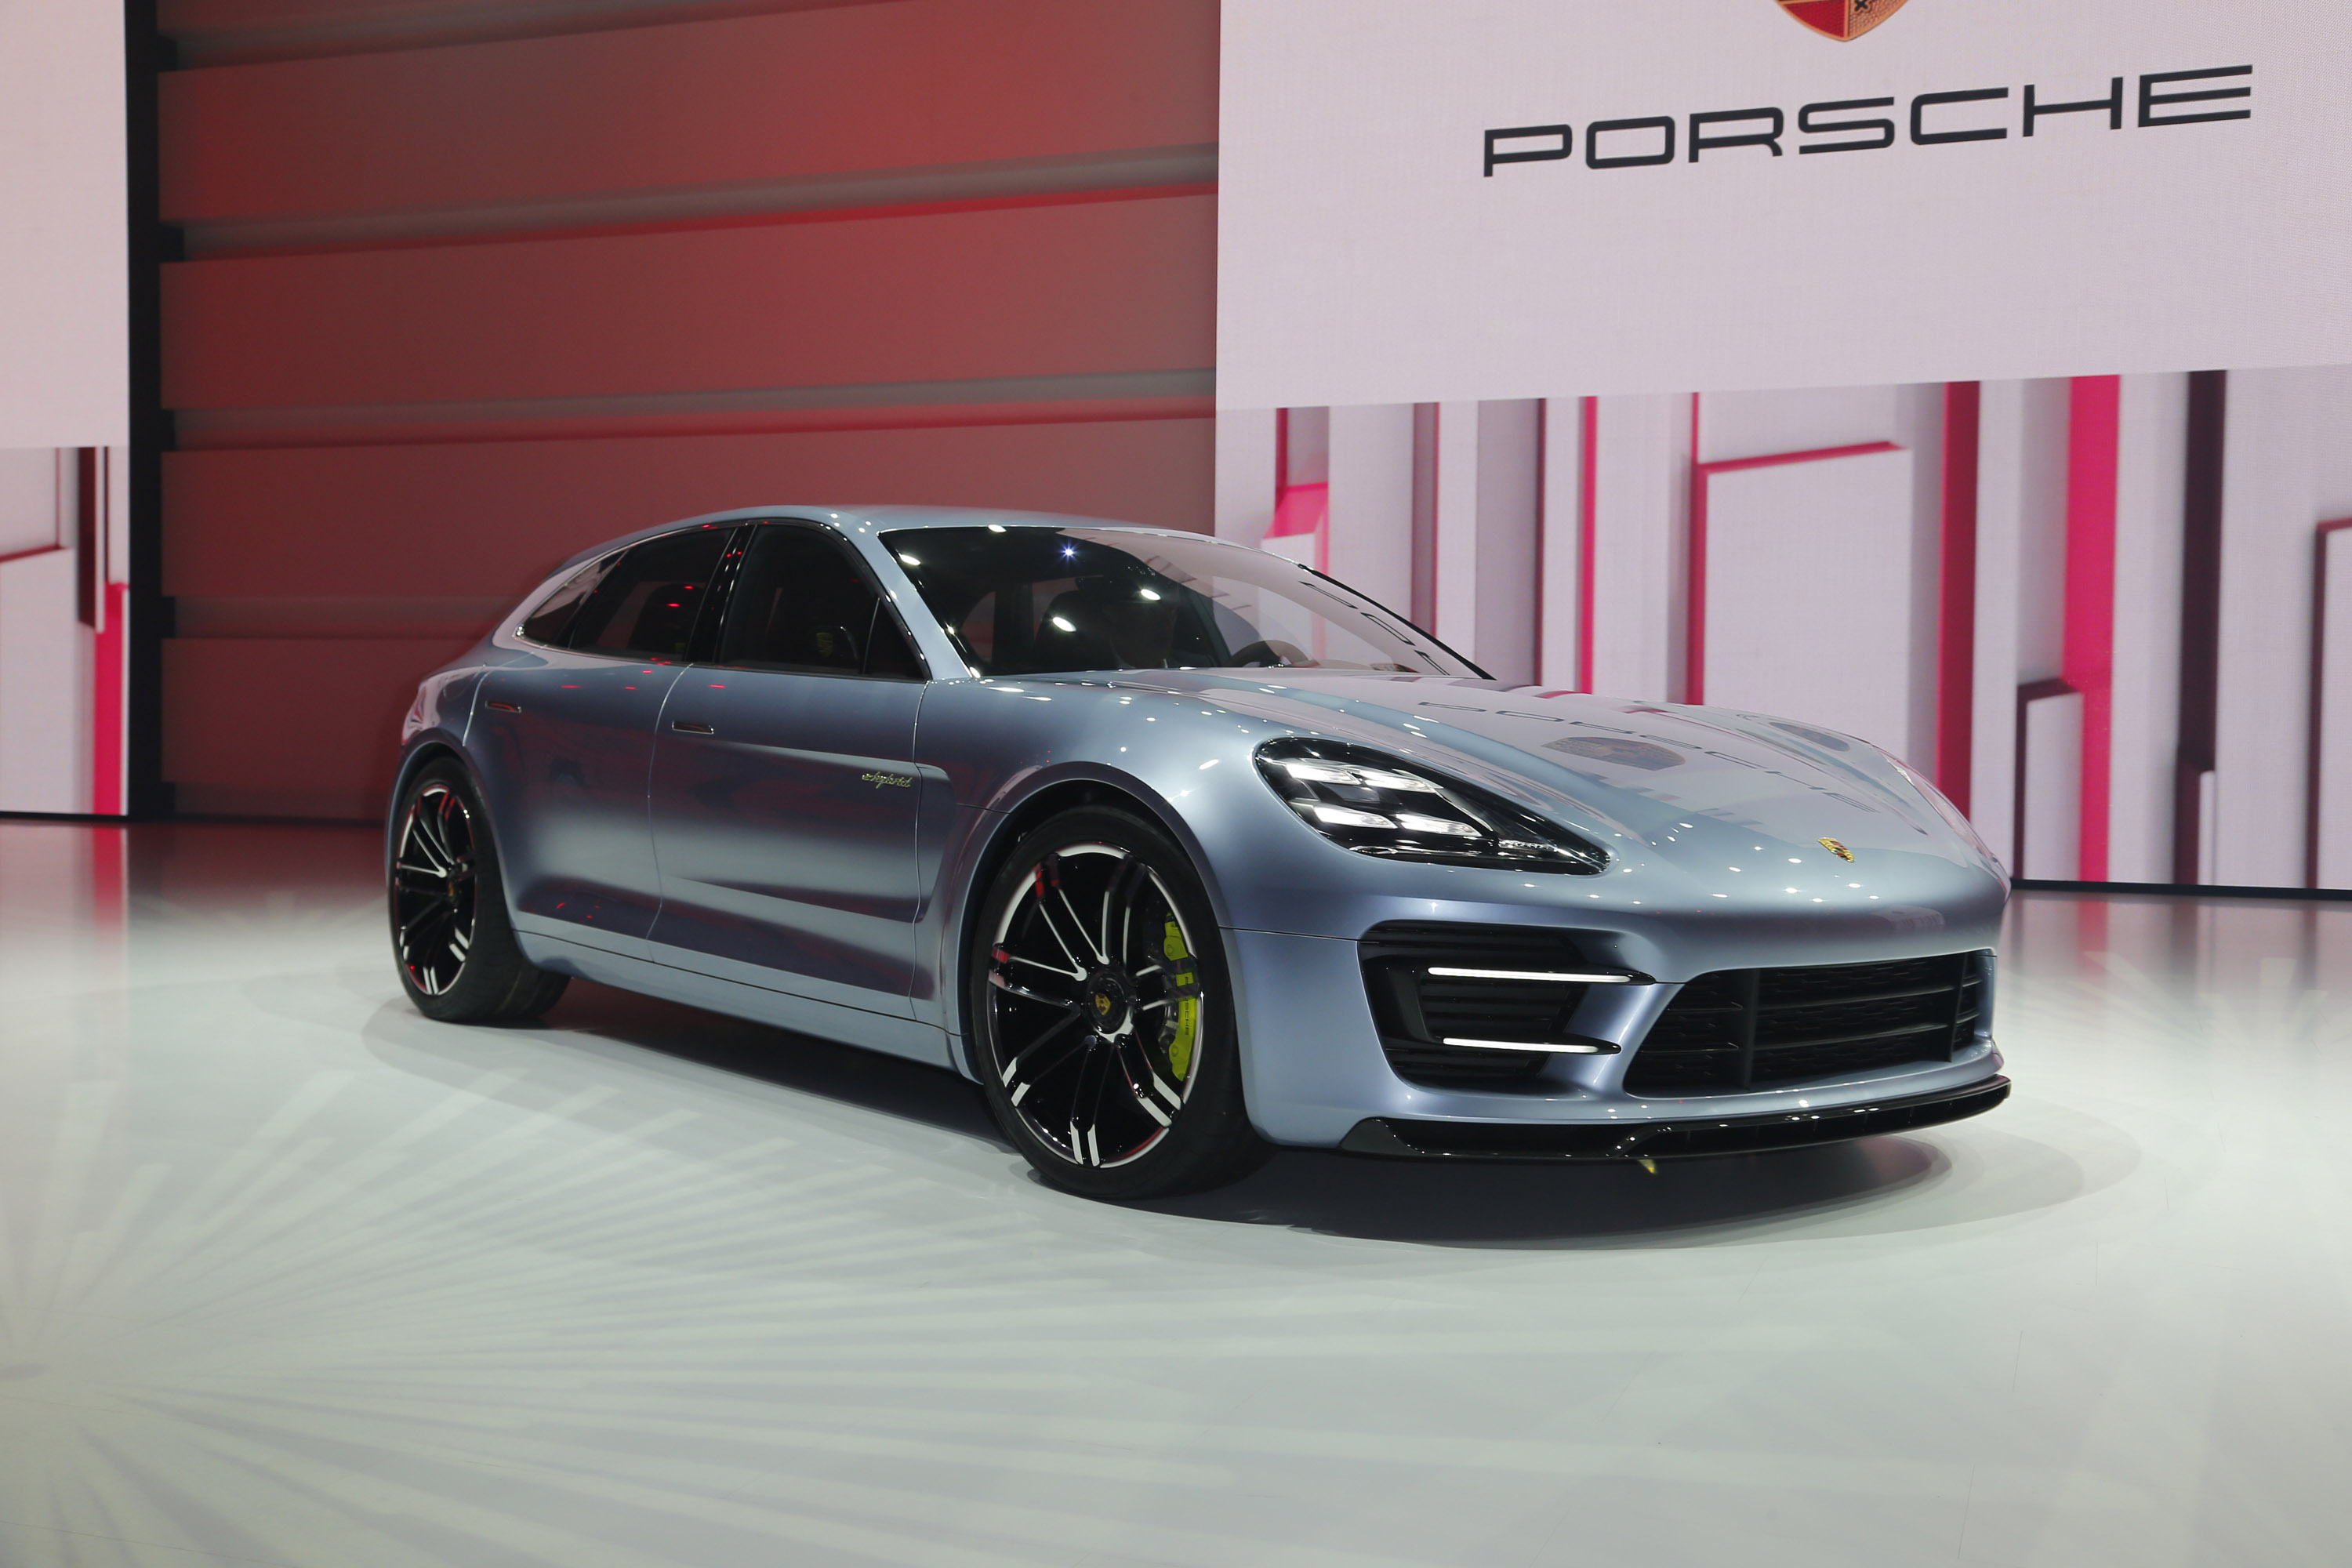 Glimpse Of The New Porsche Panamera Sport Turismo Concept Car